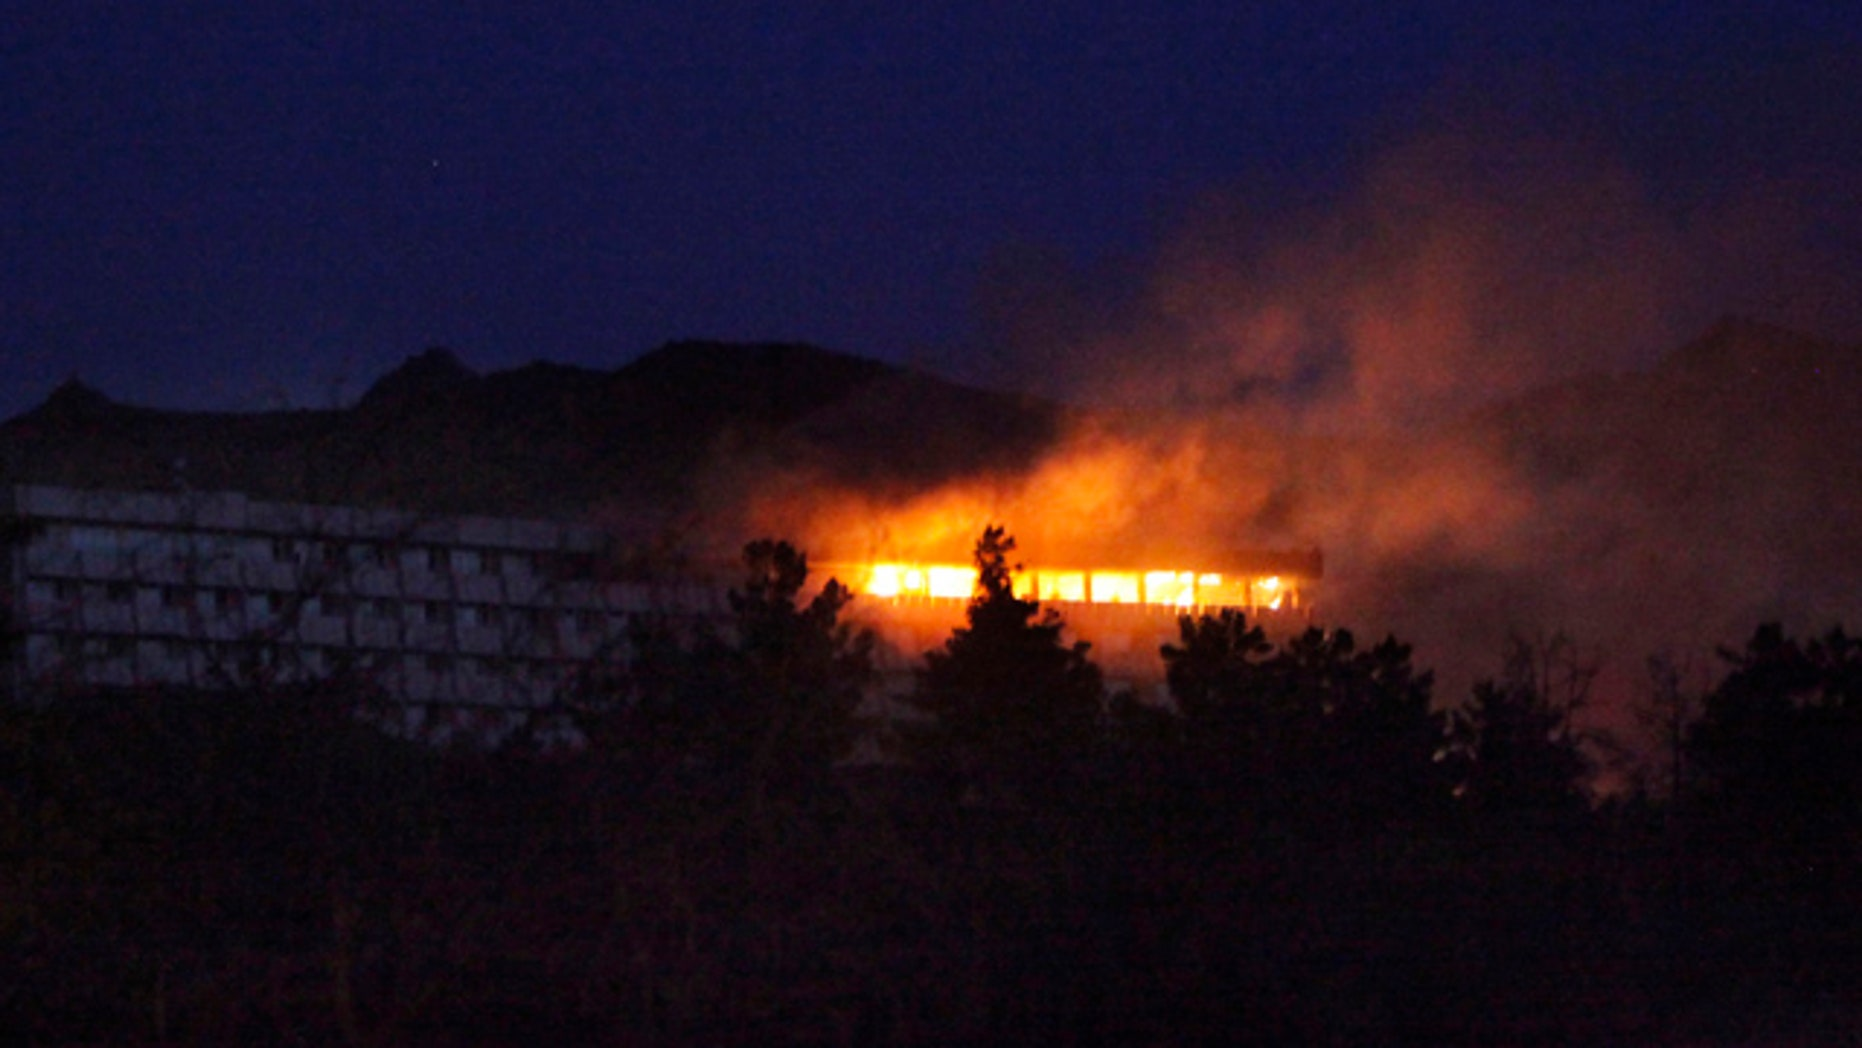 June 29: Western-style Inter-Continental hotel is on fire during an attack in Kabul, Afghanistan.